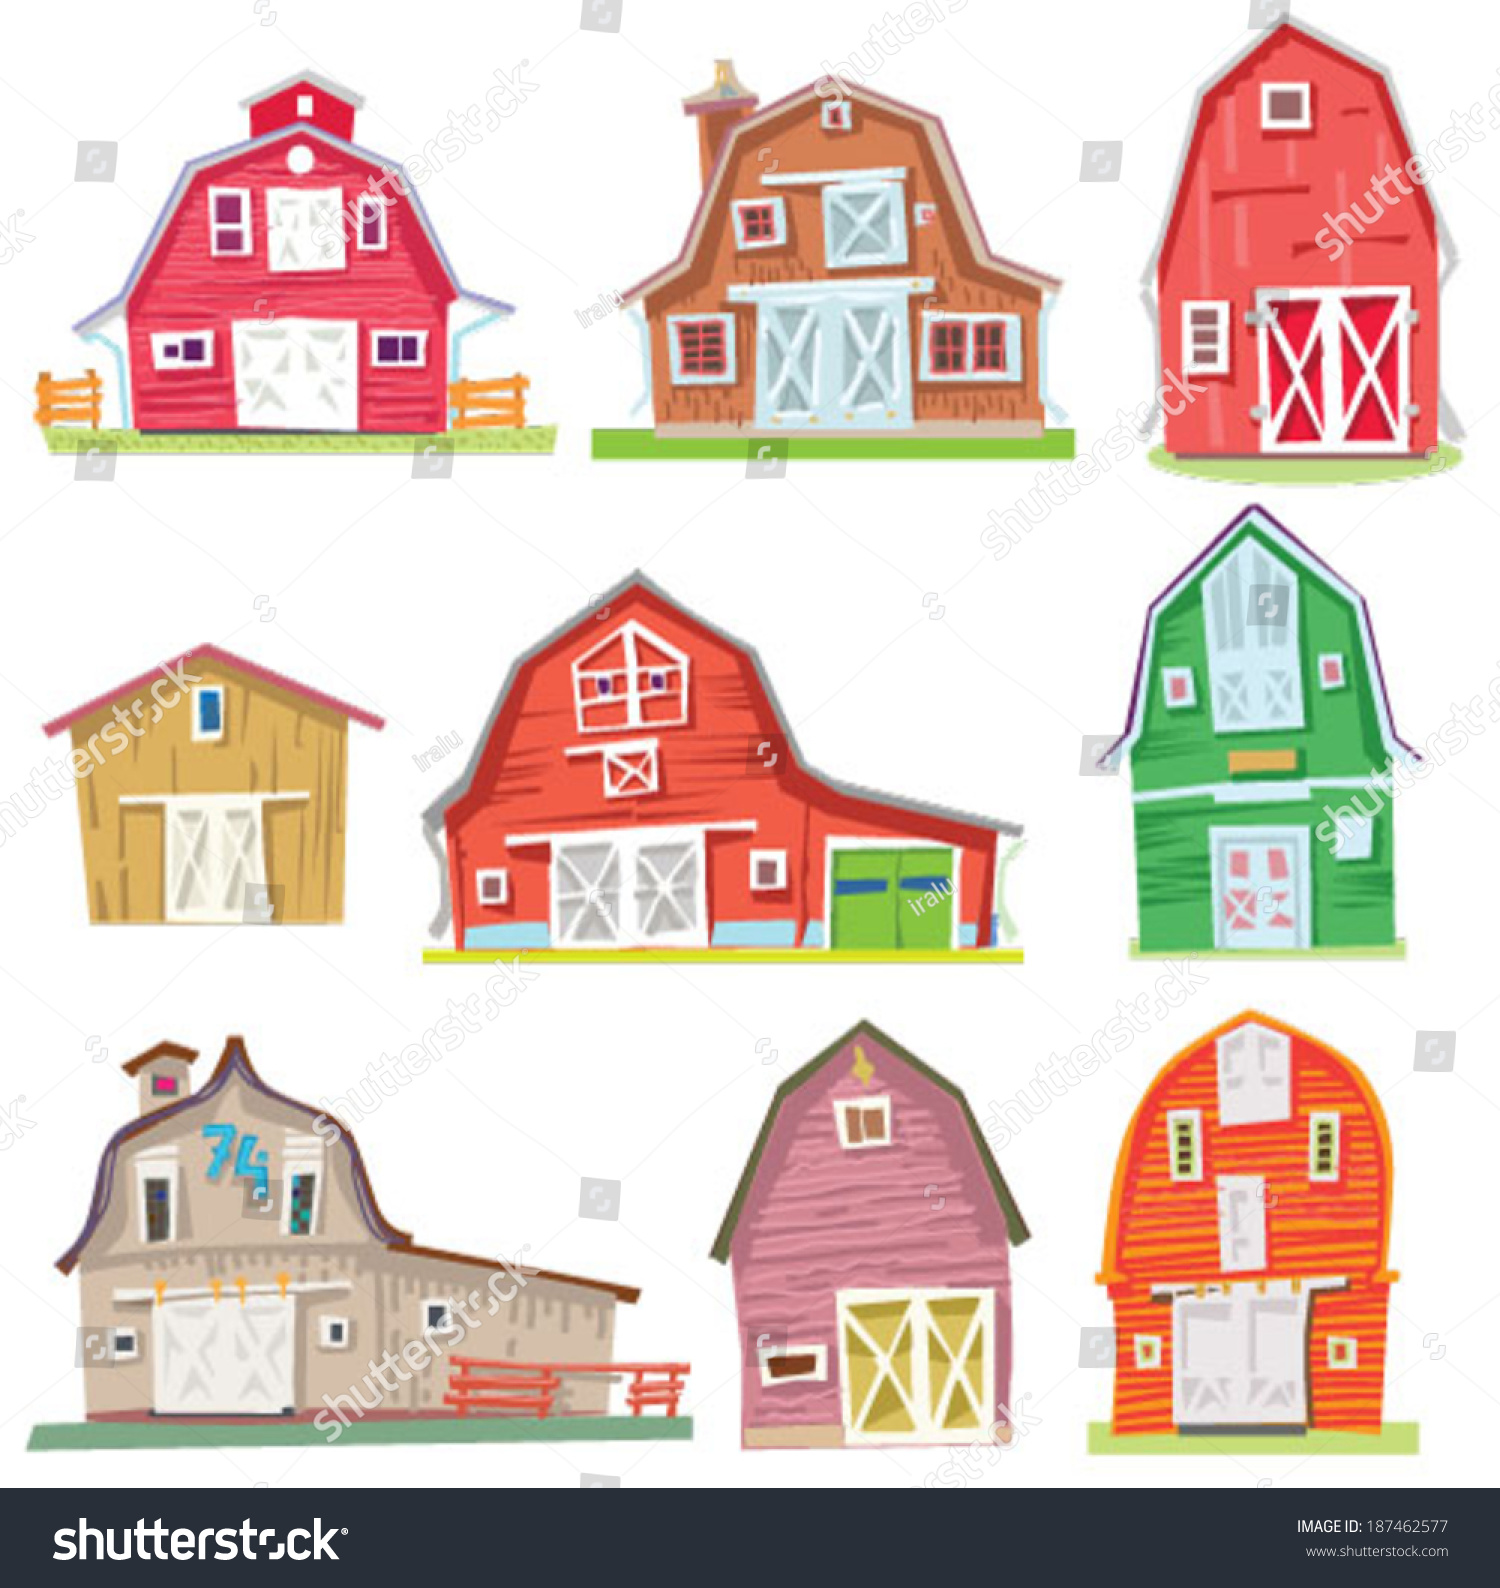 Set Vintage Barns Cartoon Stock Vector 187462577